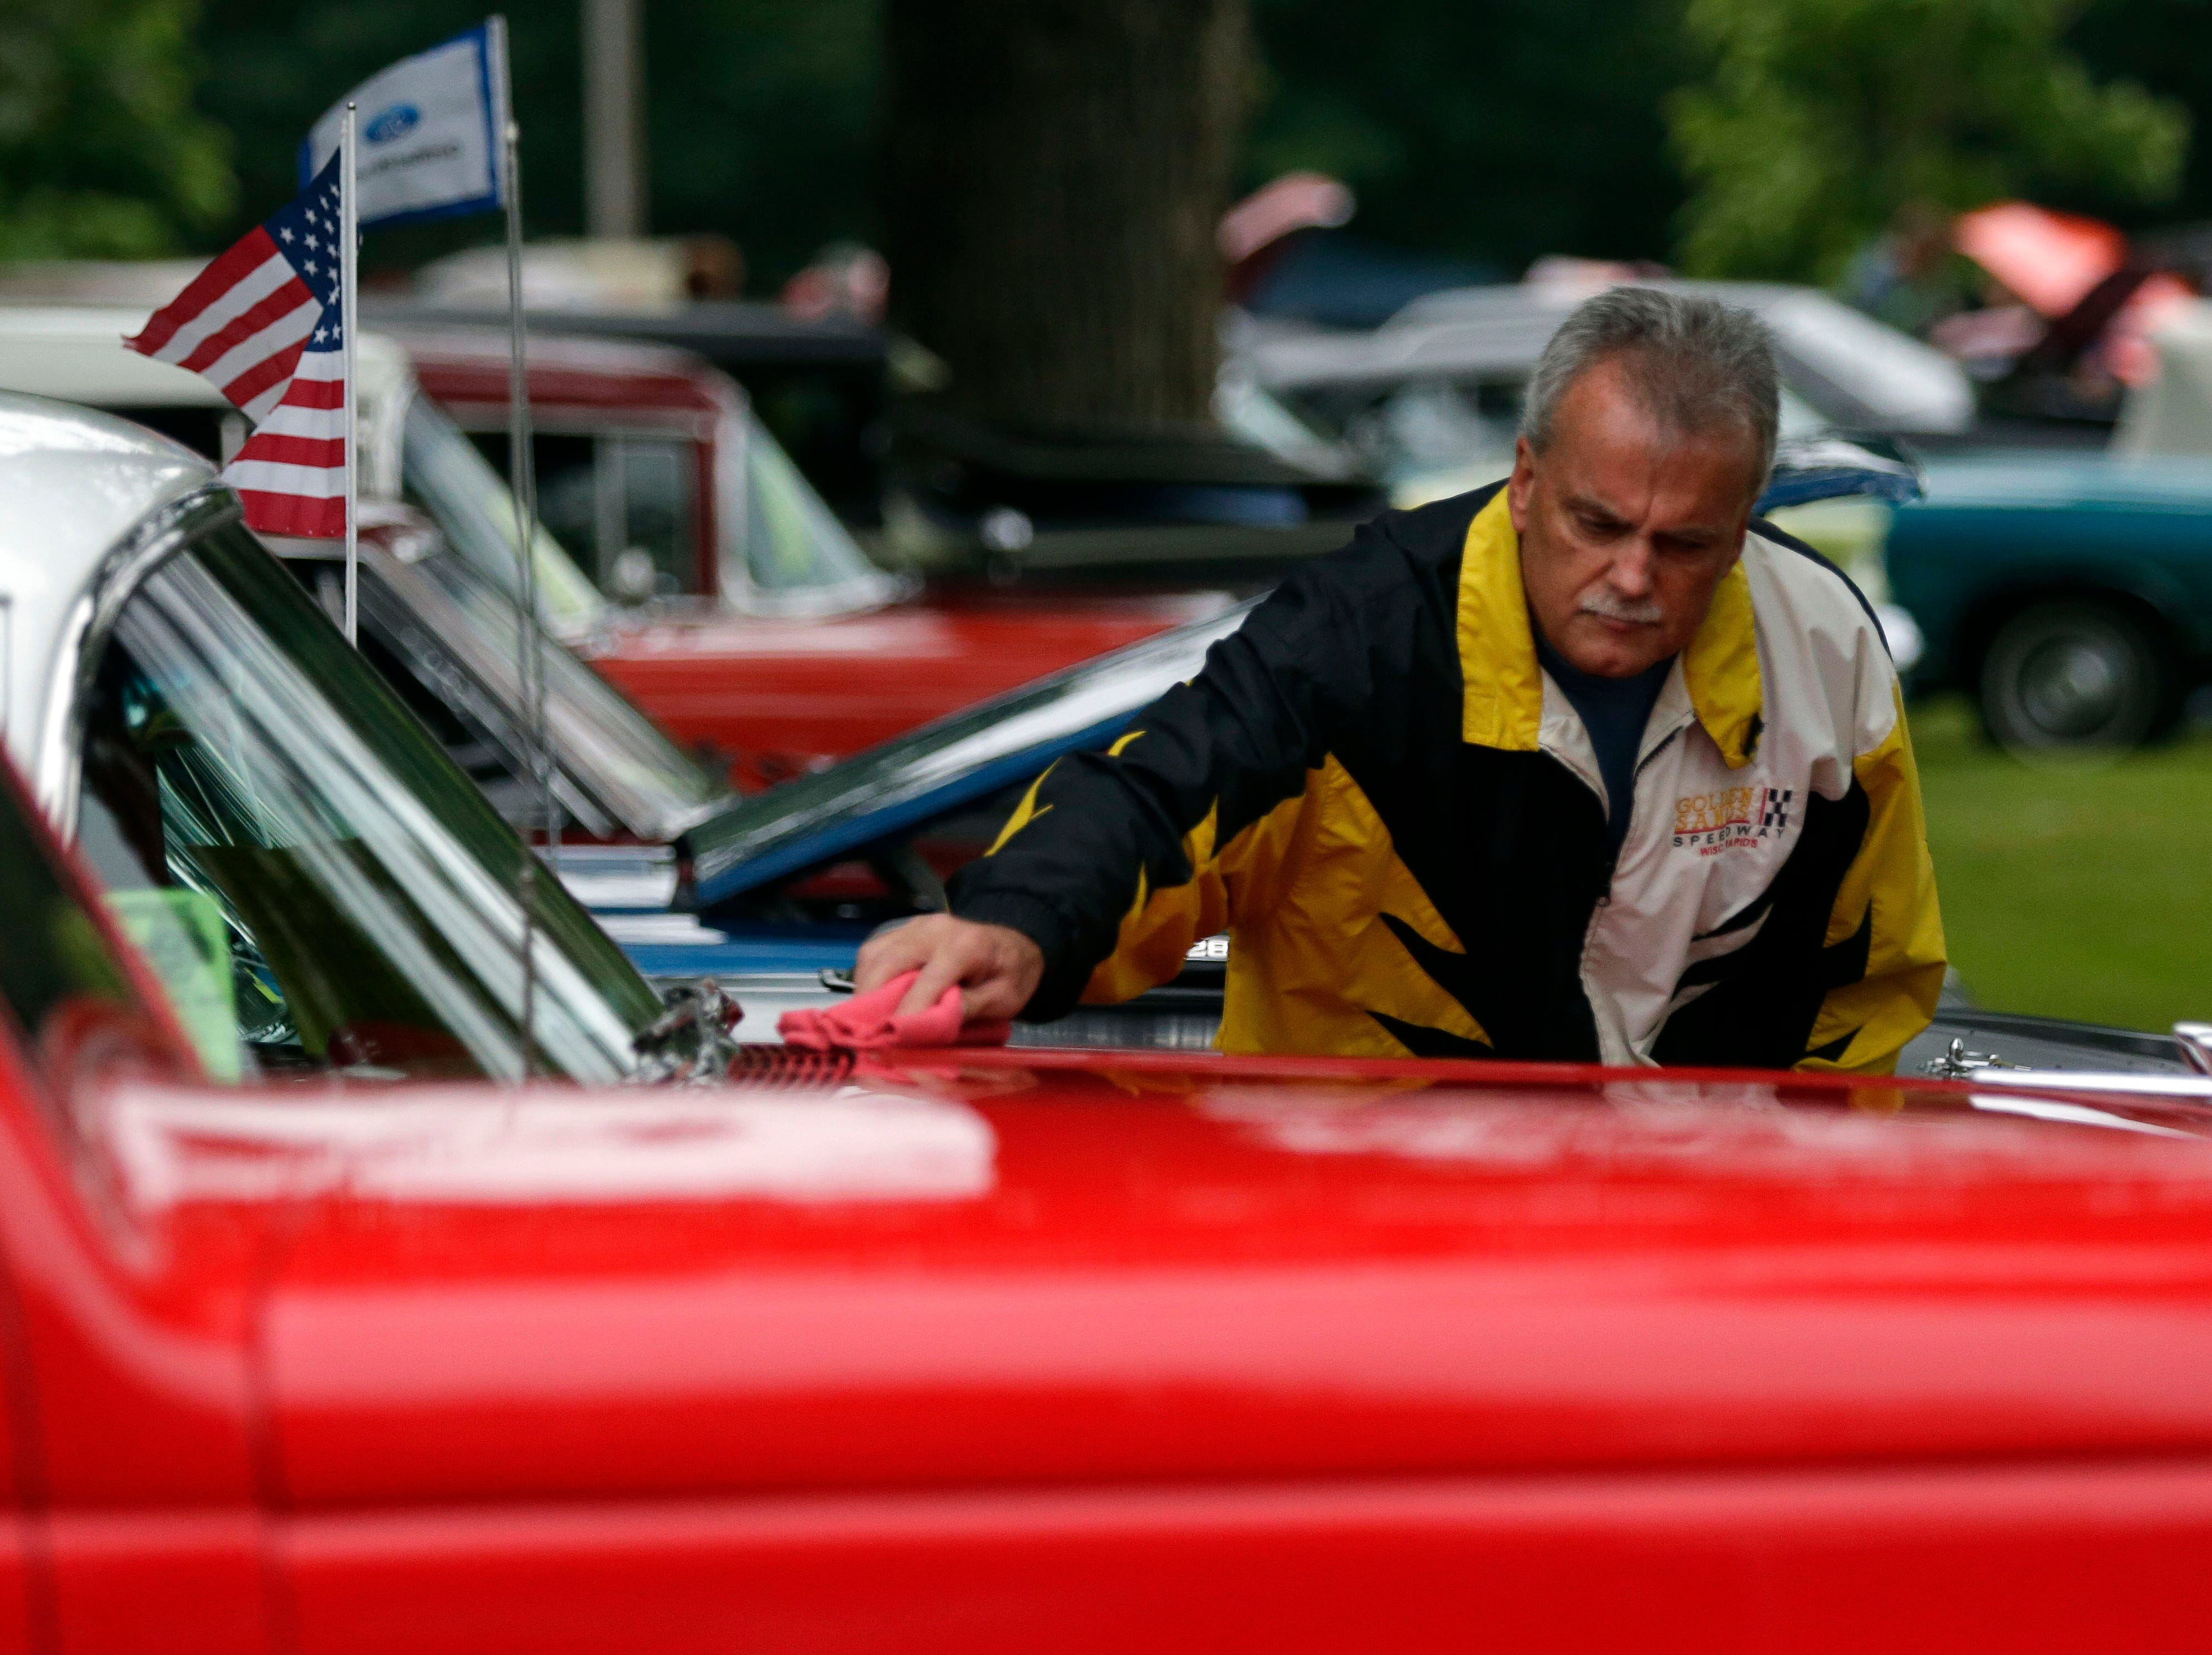 Brian Gulke cleans his car after driving from Custer, Wis., to the Appleton Old Car Show and Swap Meet Sunday, July 22, 2018, at Pierce Park in Appleton, Wis.